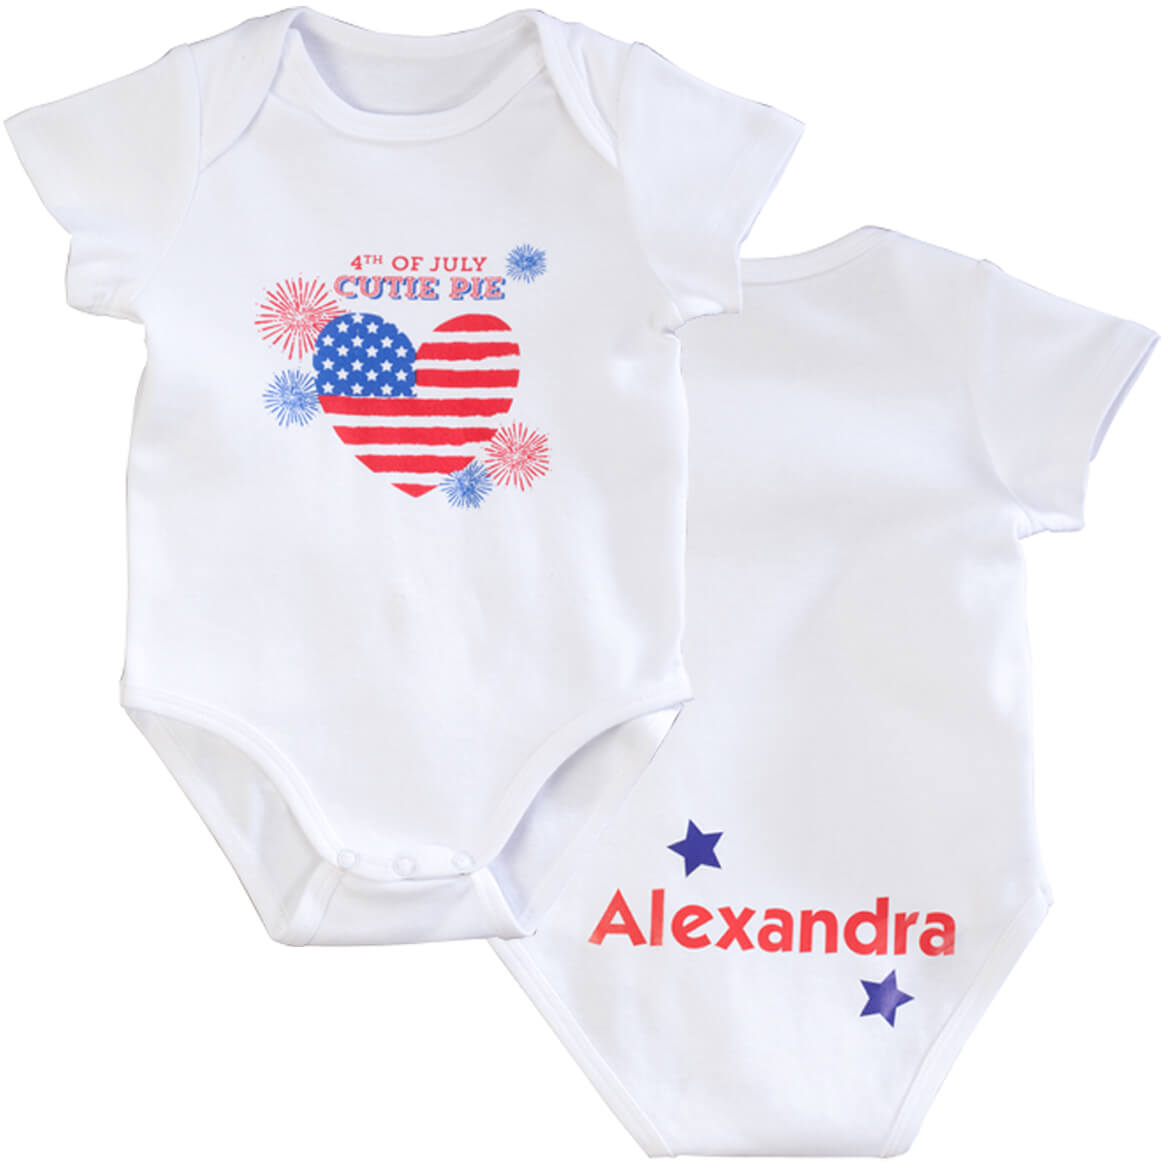 Personalized 4th of July Cutie Pie Onesie